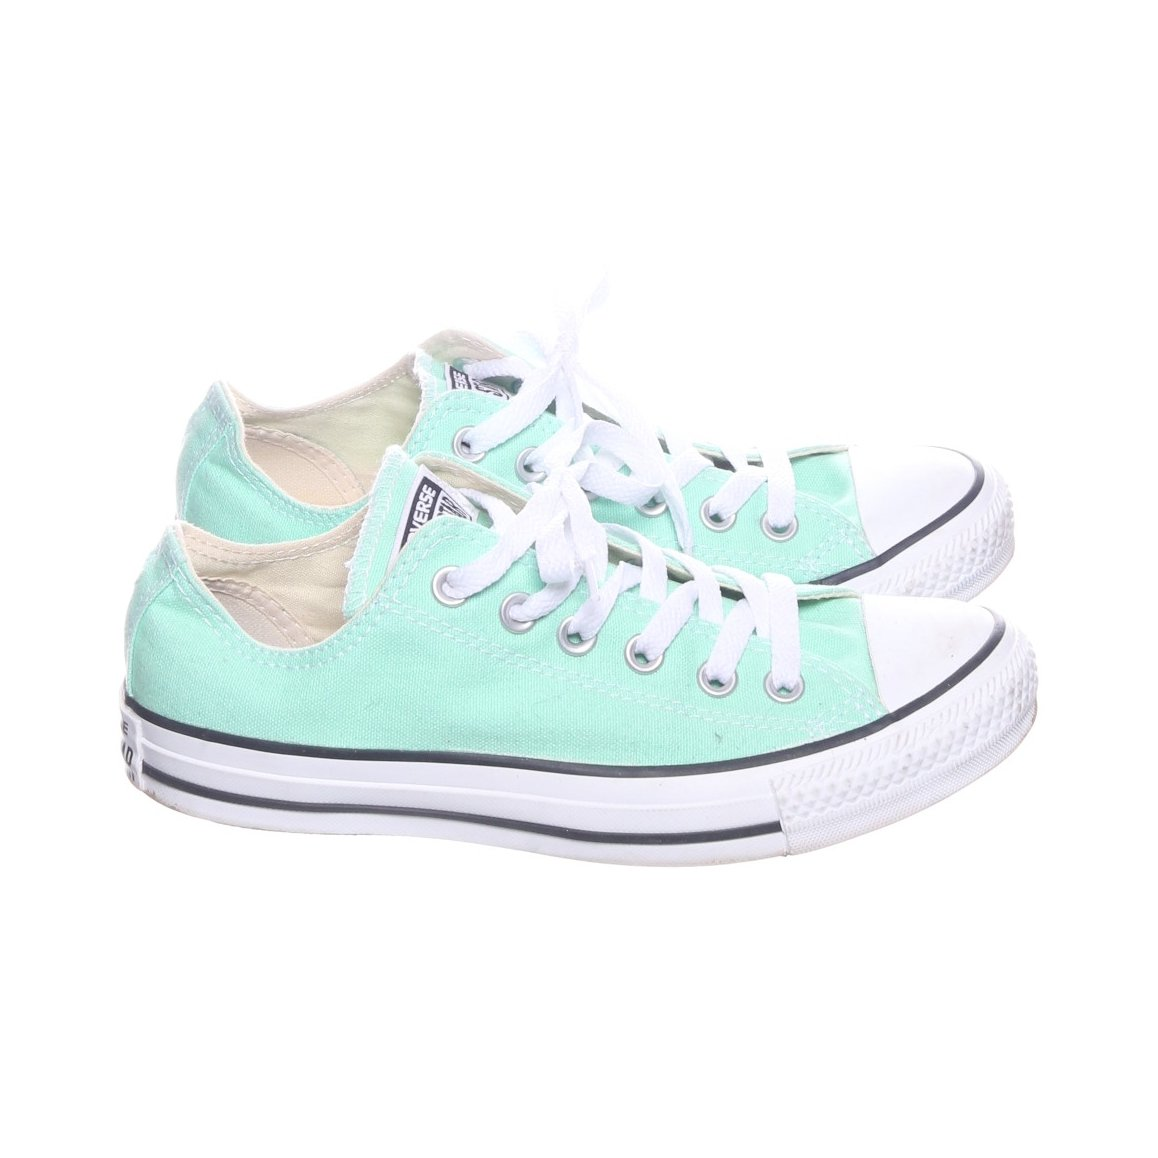 aa381f47c61 Converse, Sneakers, Strl: 37, All Star Lo.. (345869111) ᐈ Sellpy på ...